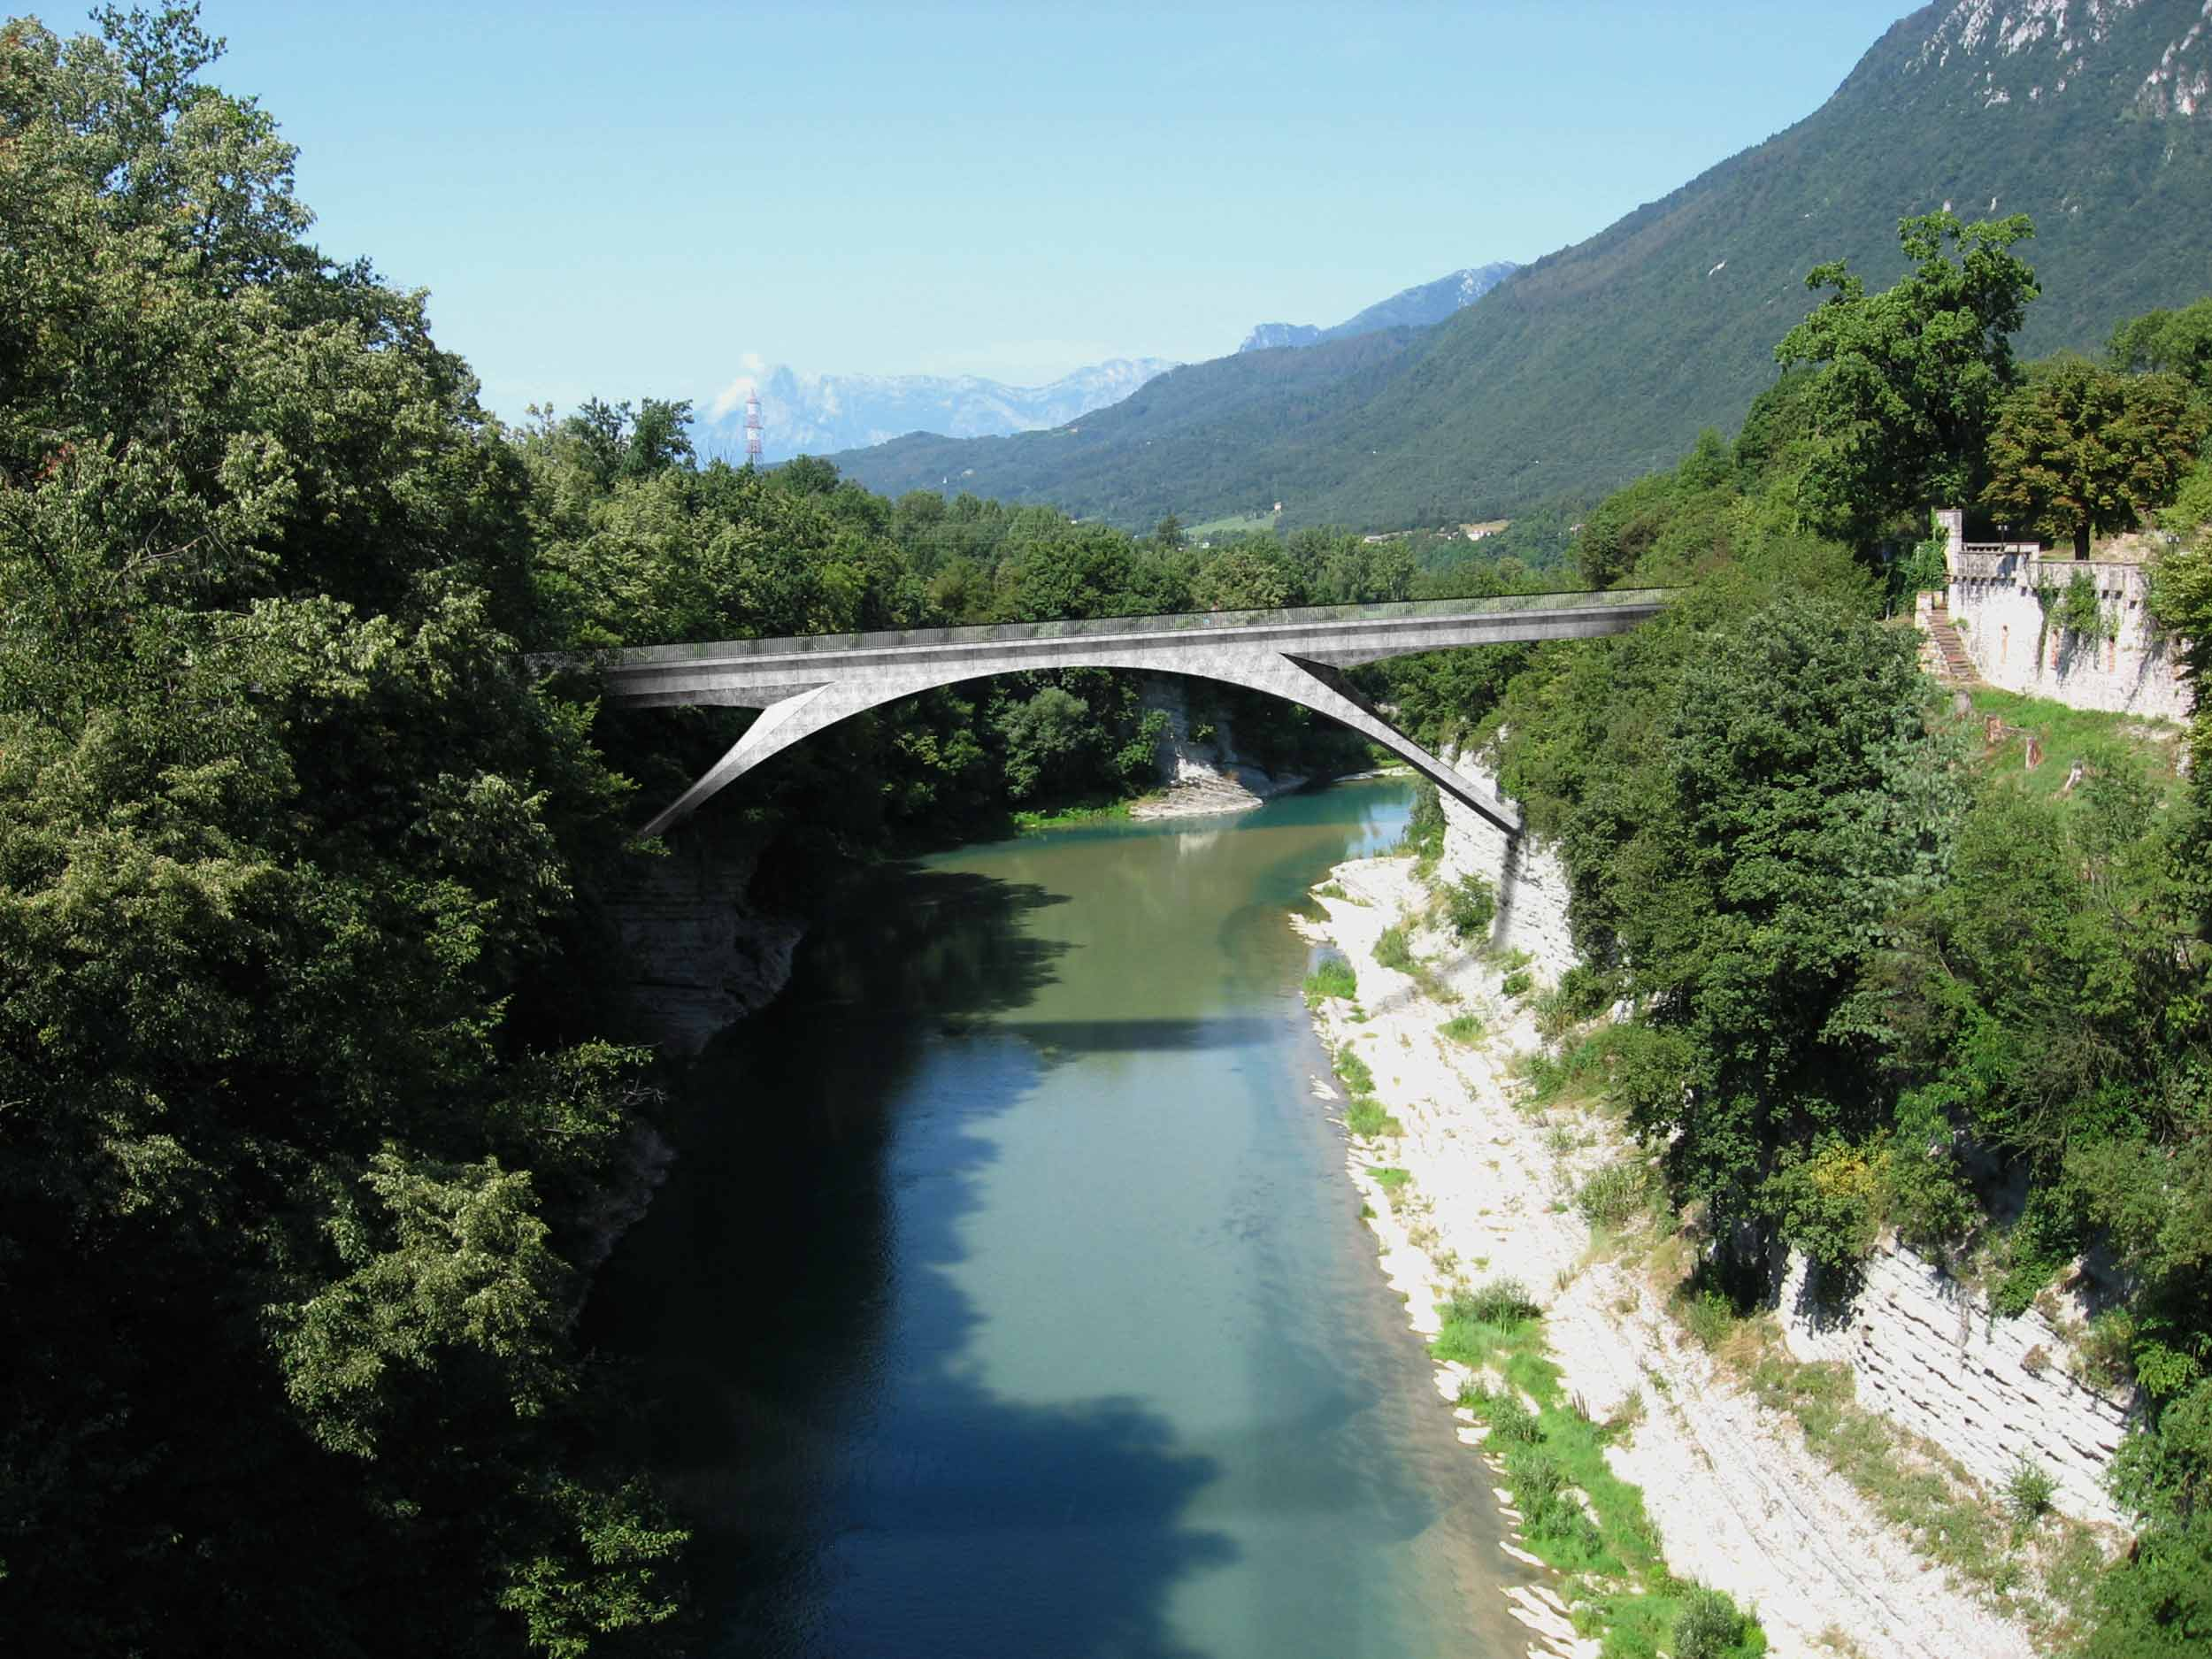 20110304-piave-river-bridge---view-4.jpg